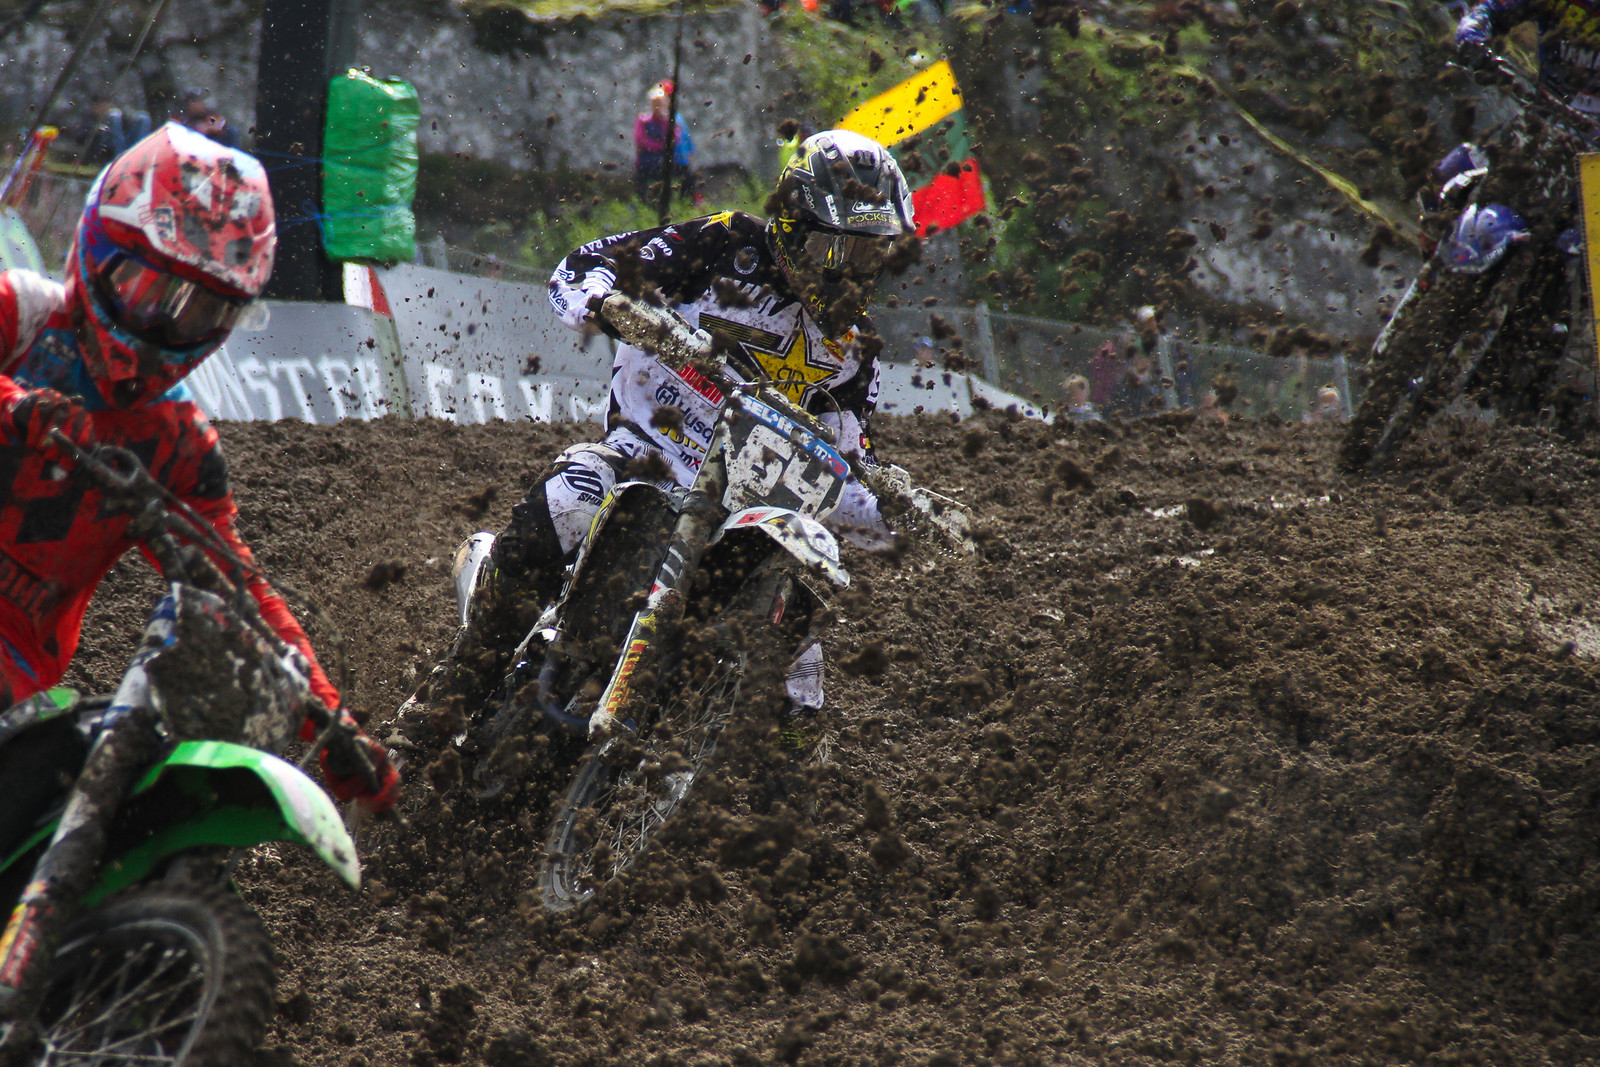 Thomas Covington - ayearinmx - Motocross Pictures - Vital MX